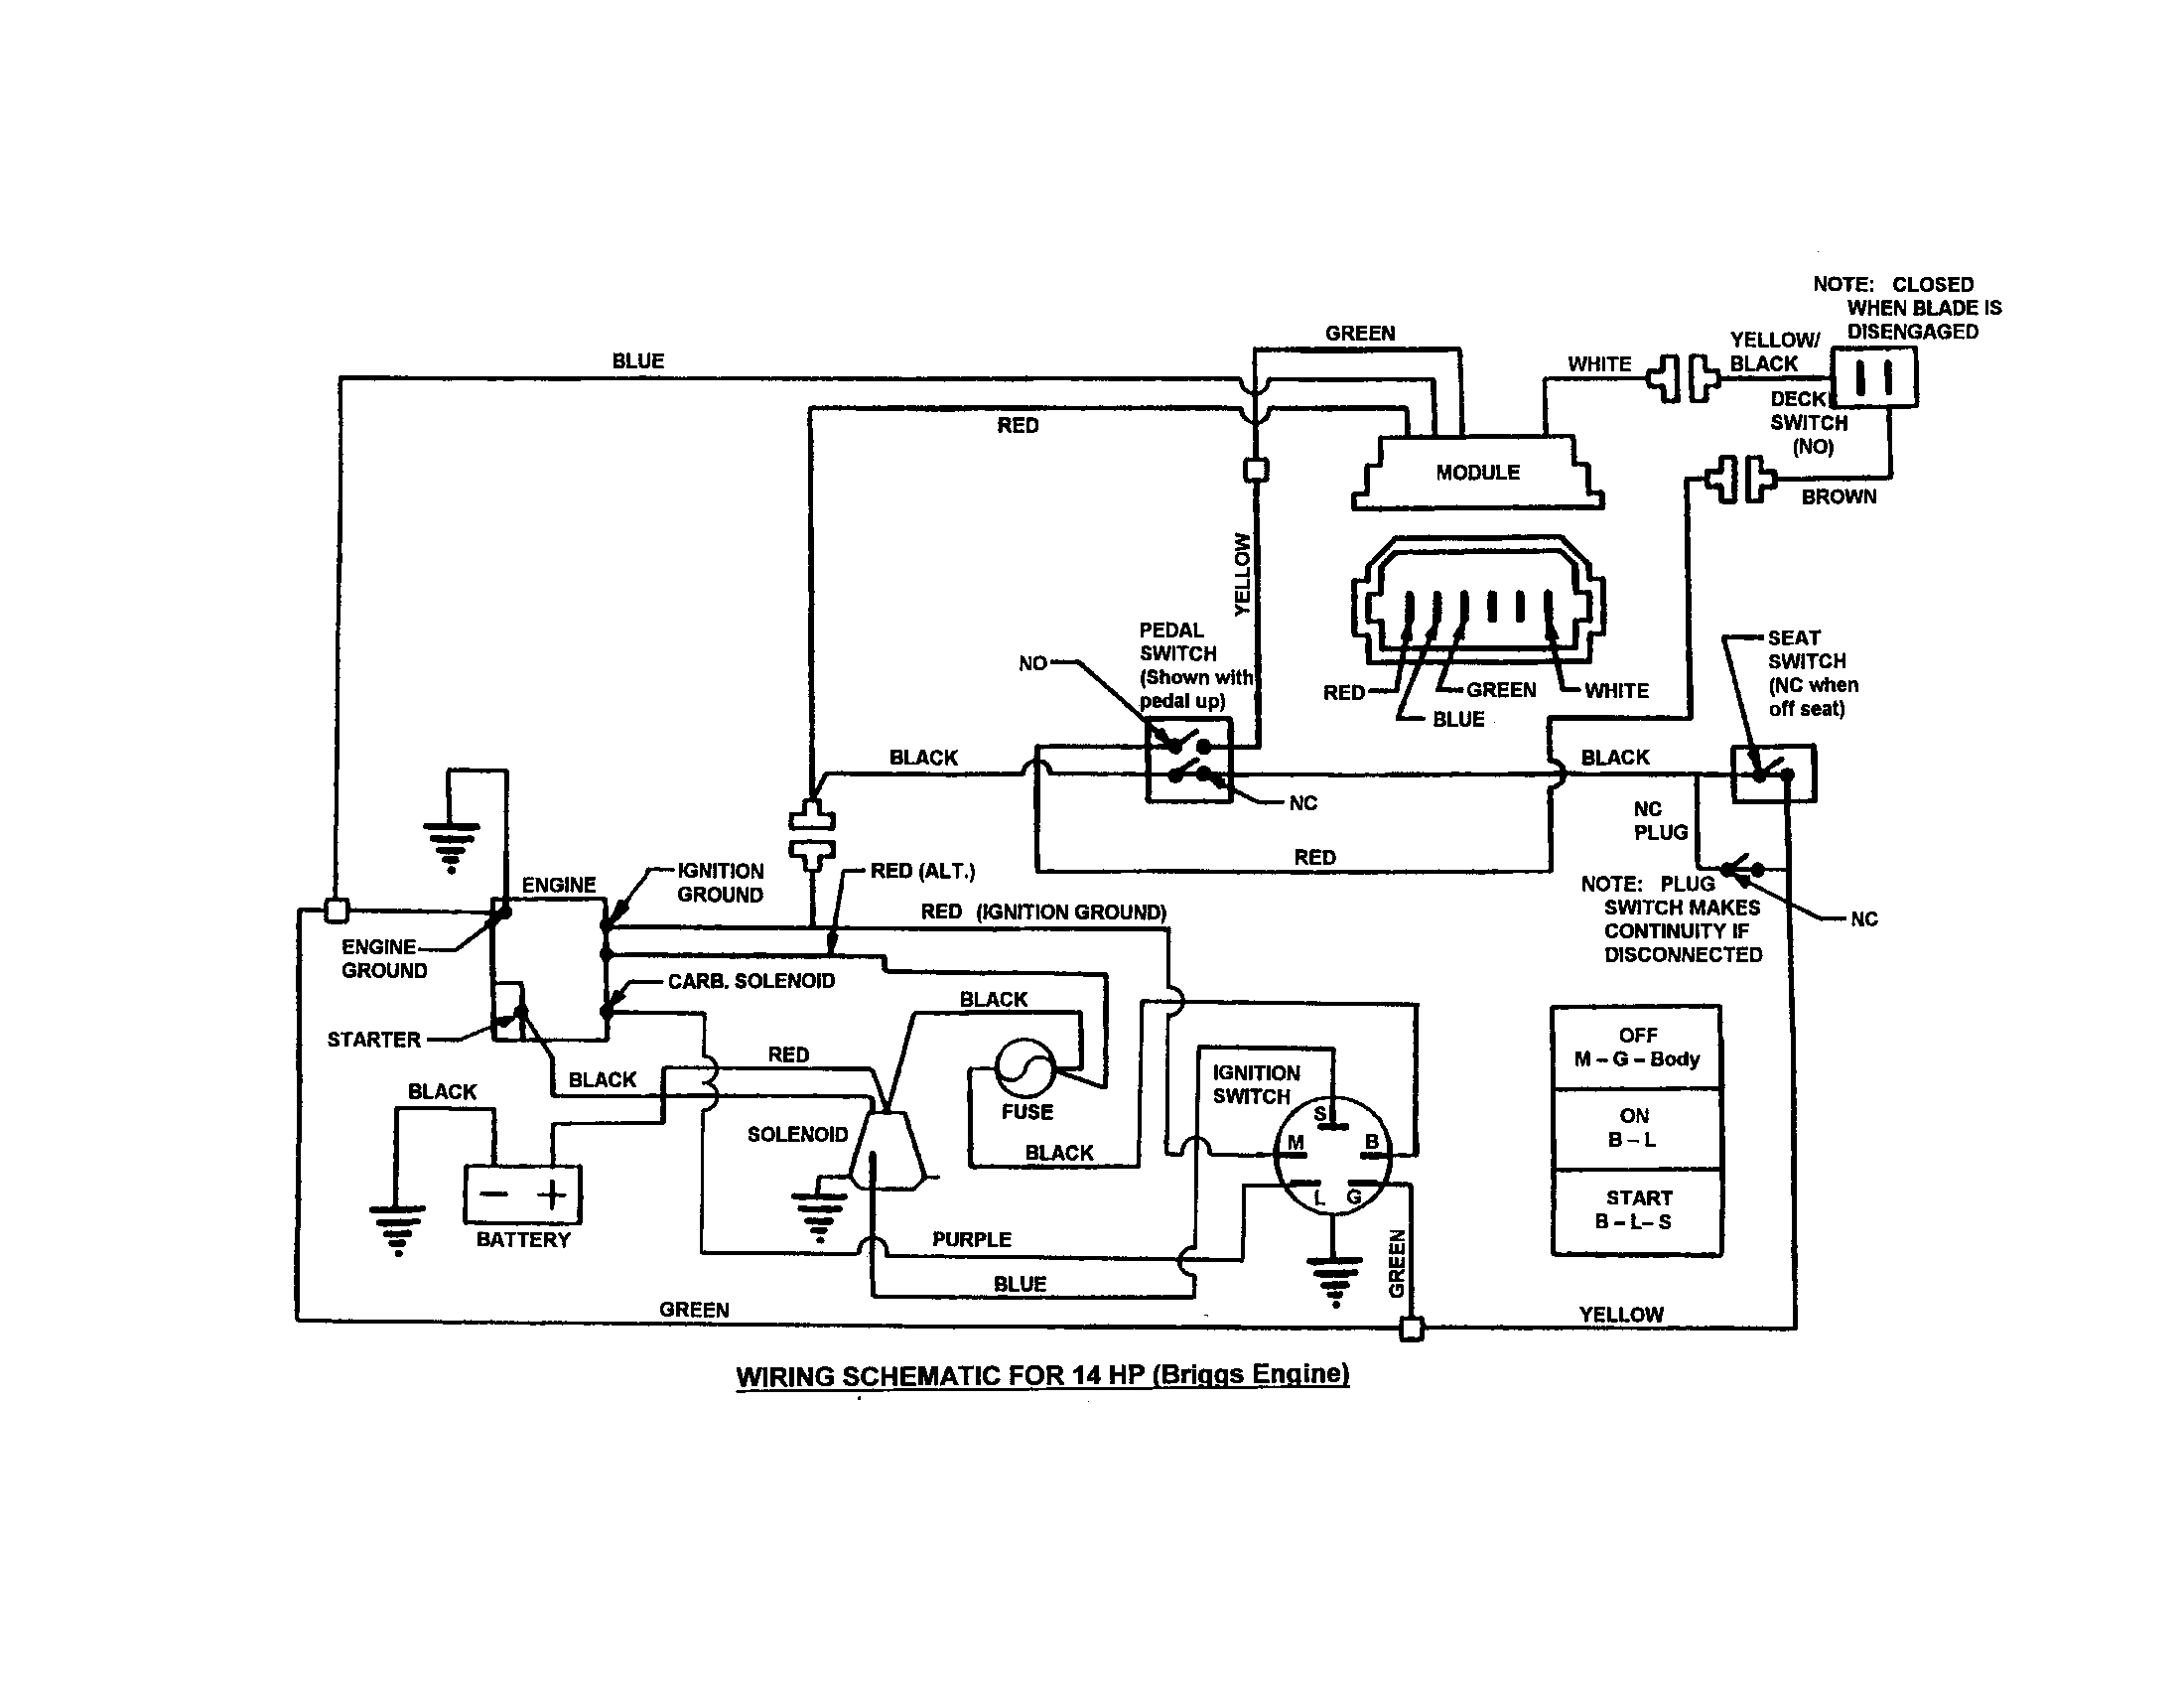 hight resolution of snapper 250816b wiring schematic 14 hp diagram